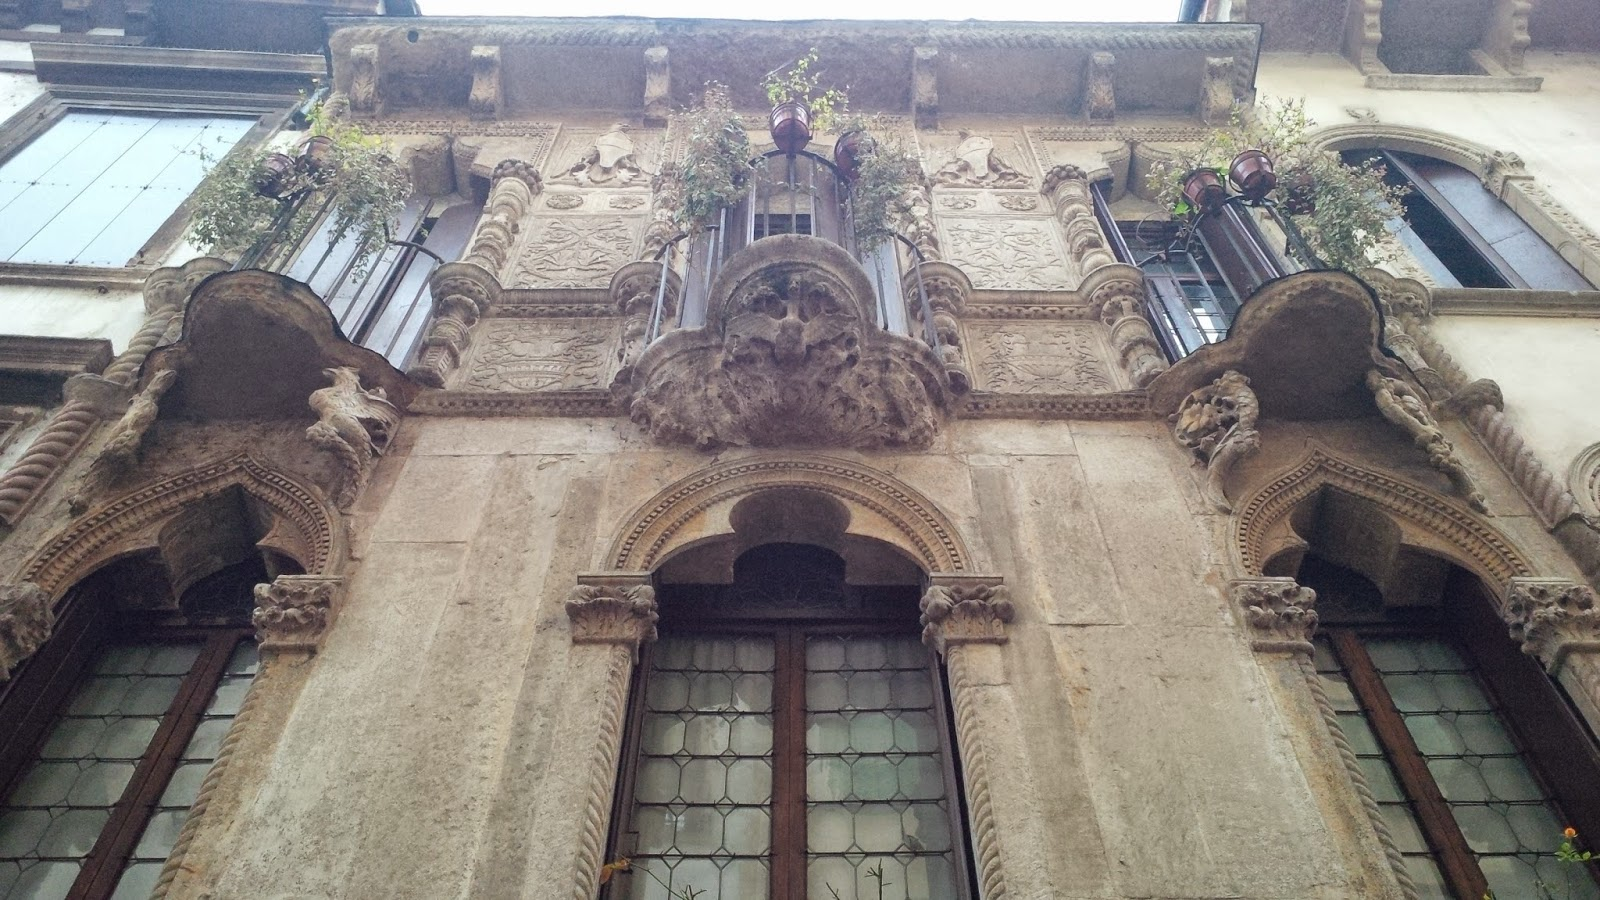 The facade of Antonio Pigafetta's house in Vicenza, Italy